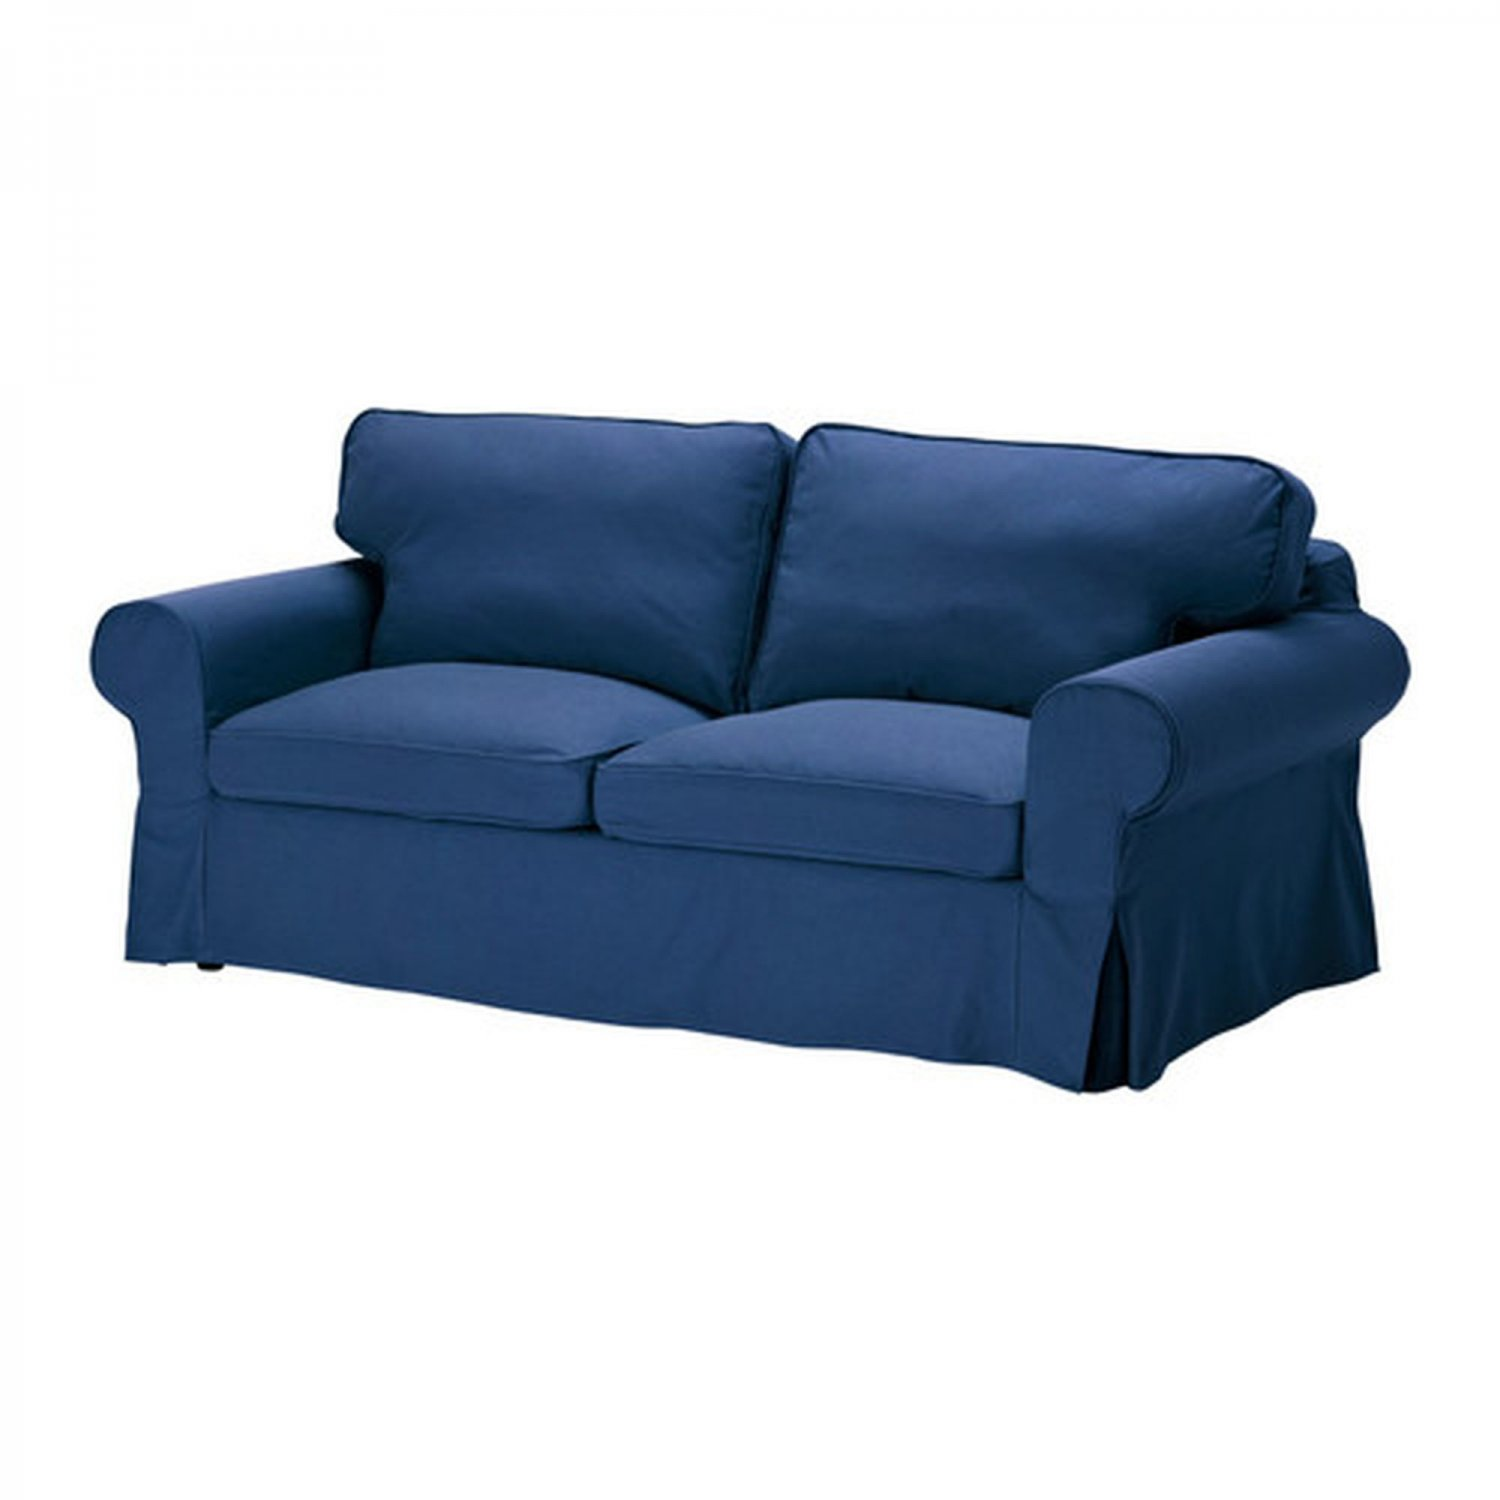 Ikea ektorp 2 seat sofa cover loveseat slipcover idemo blue Couch and loveseat covers